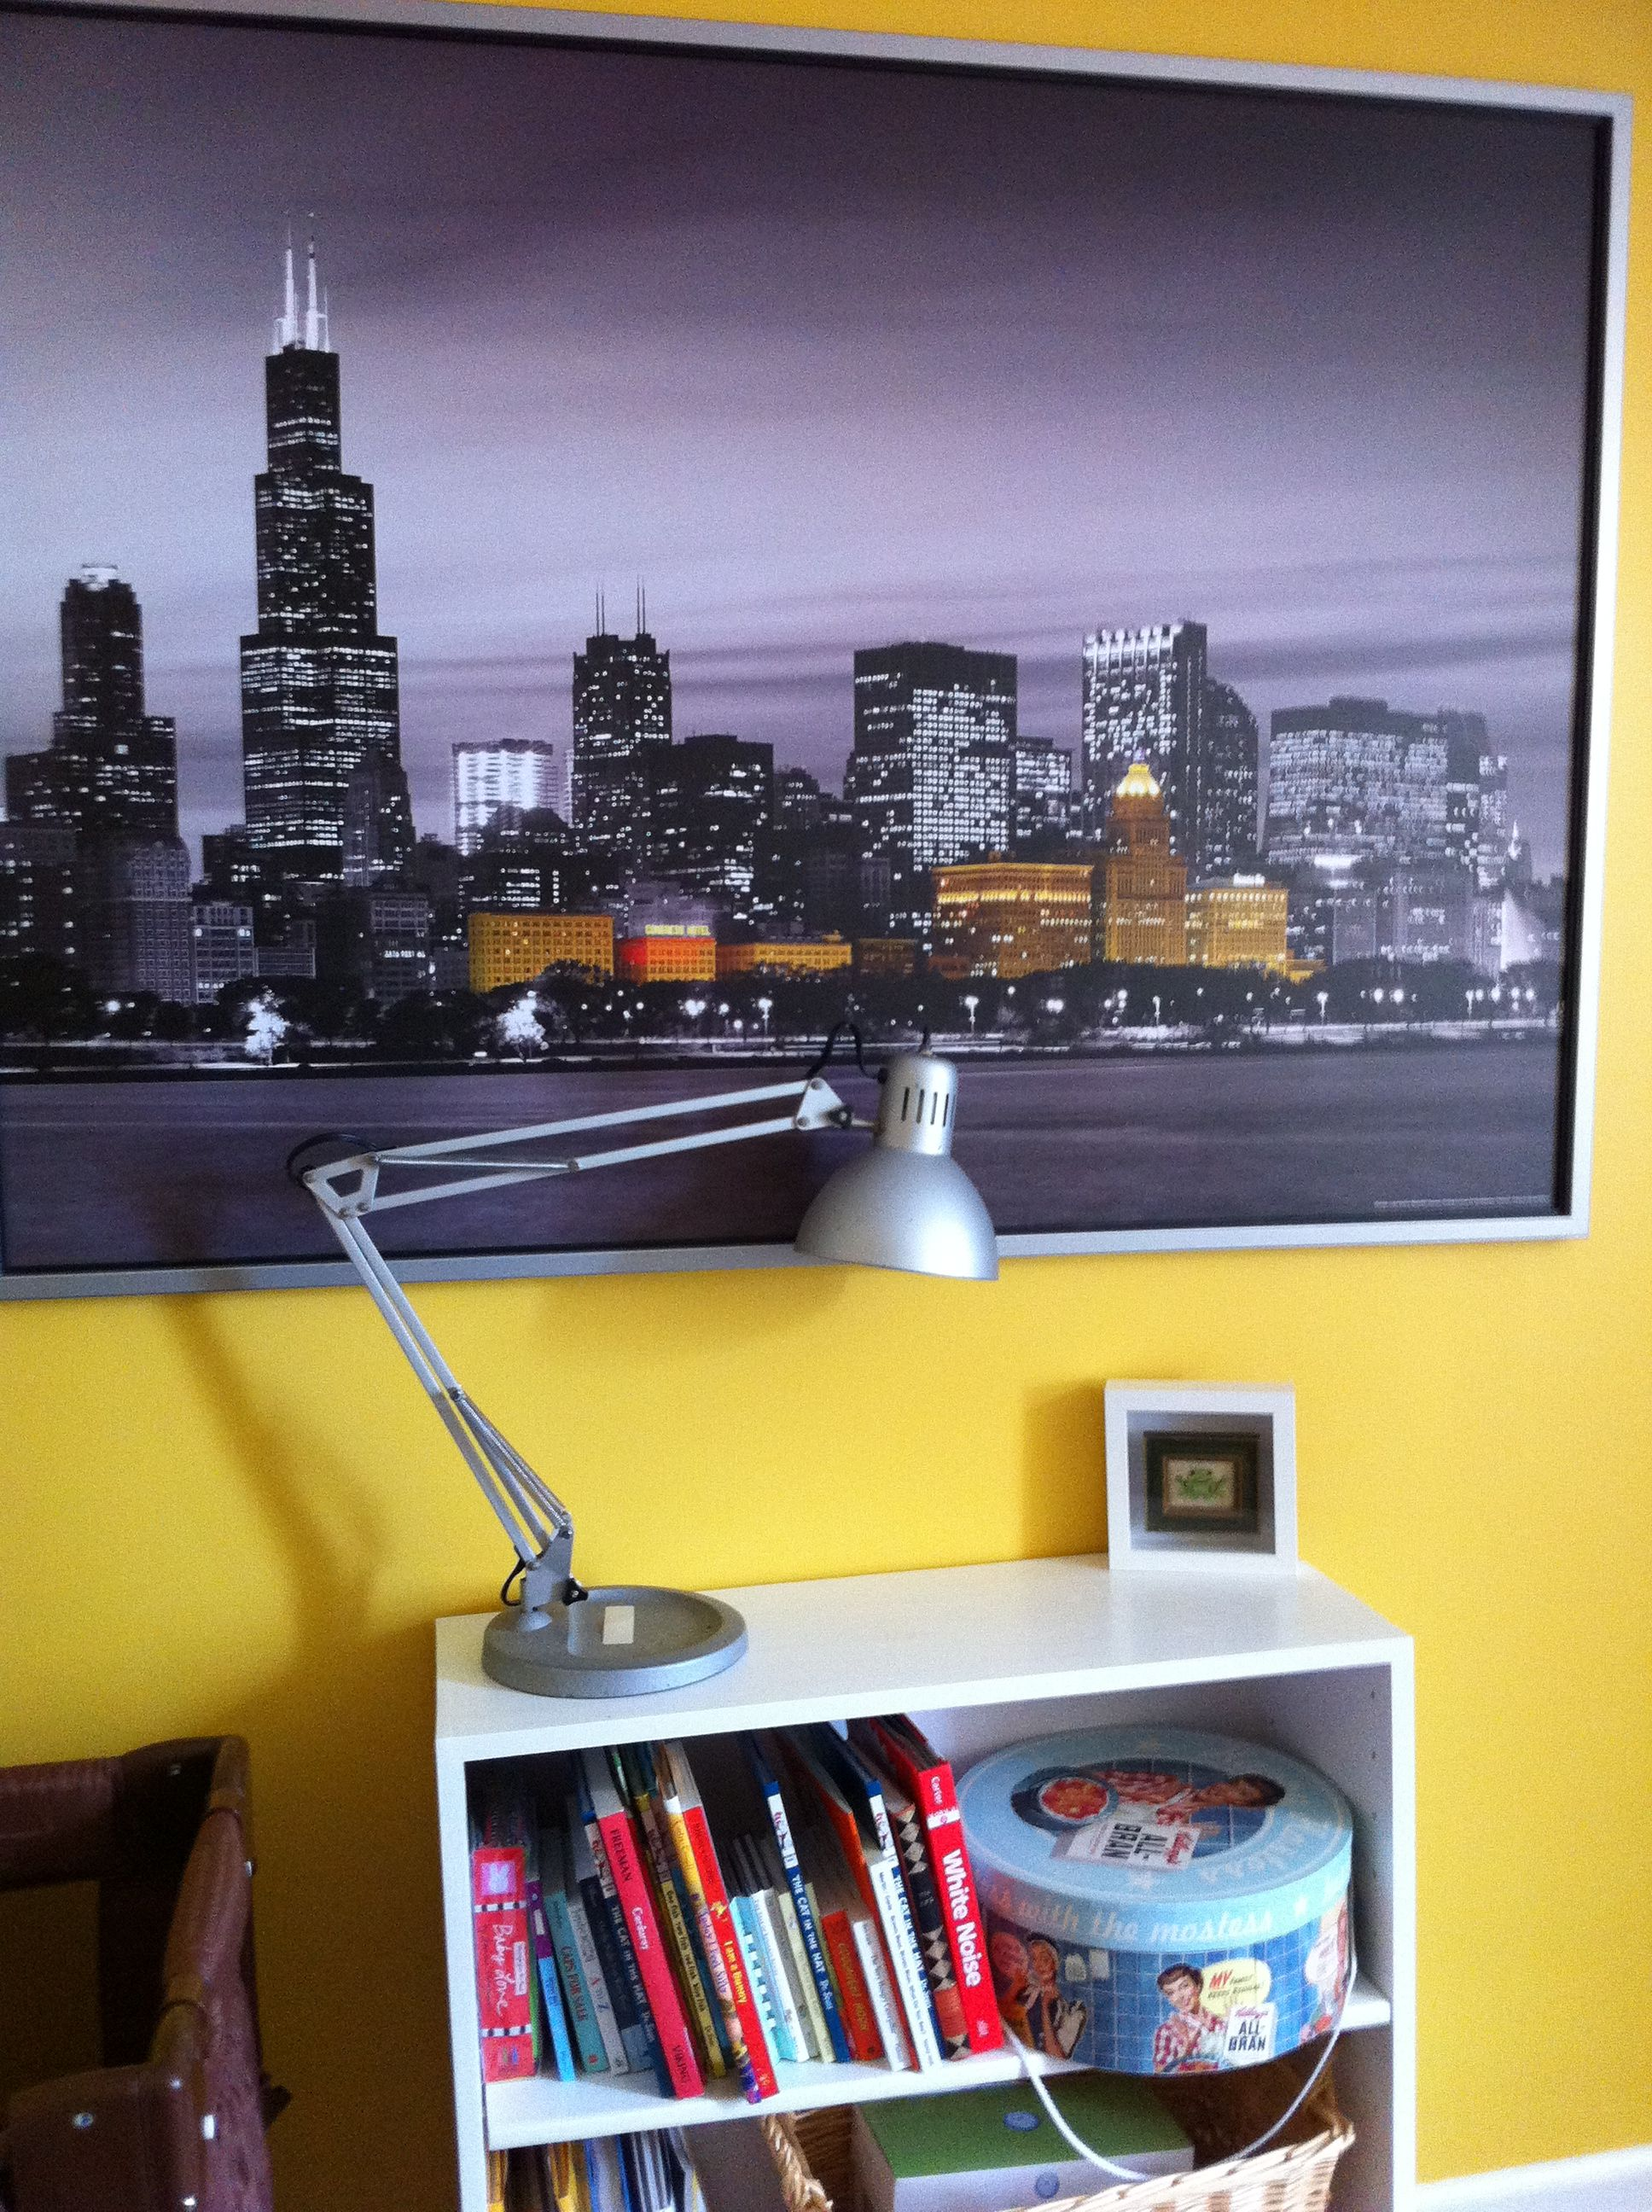 Chicago Print - IKEA | Da Chi | Pinterest | Room, Walls and Living rooms